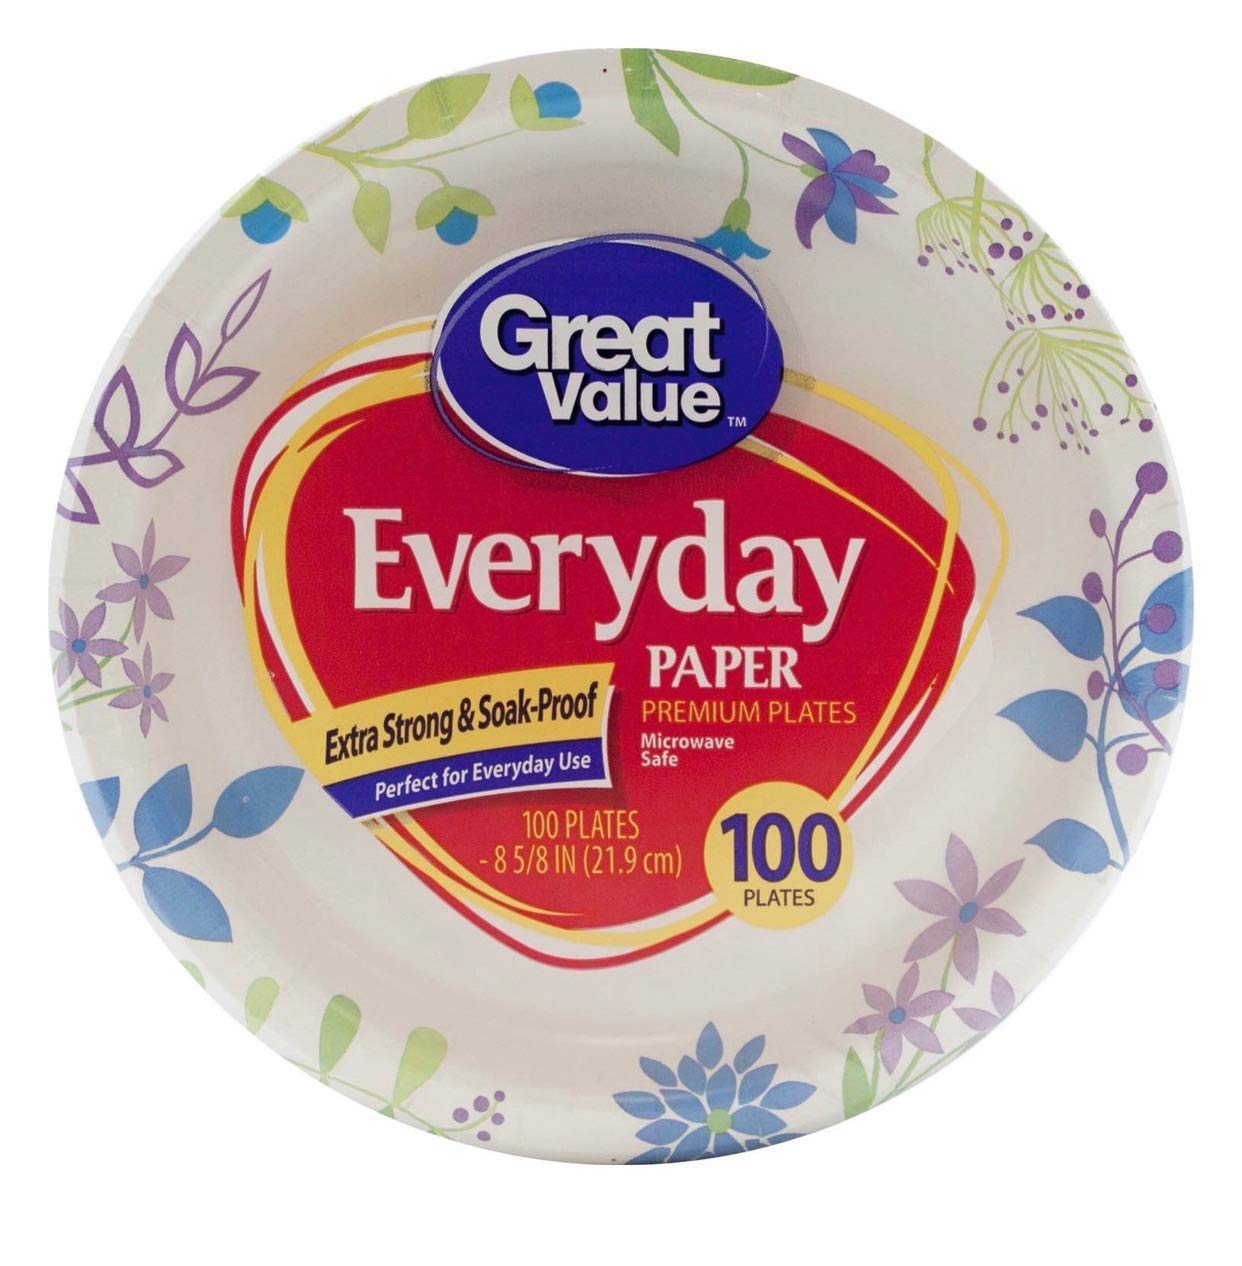 Great Value 8 5/8'' Heavy Duty Premium Party Paper Plates, 100 ct (200 ct)